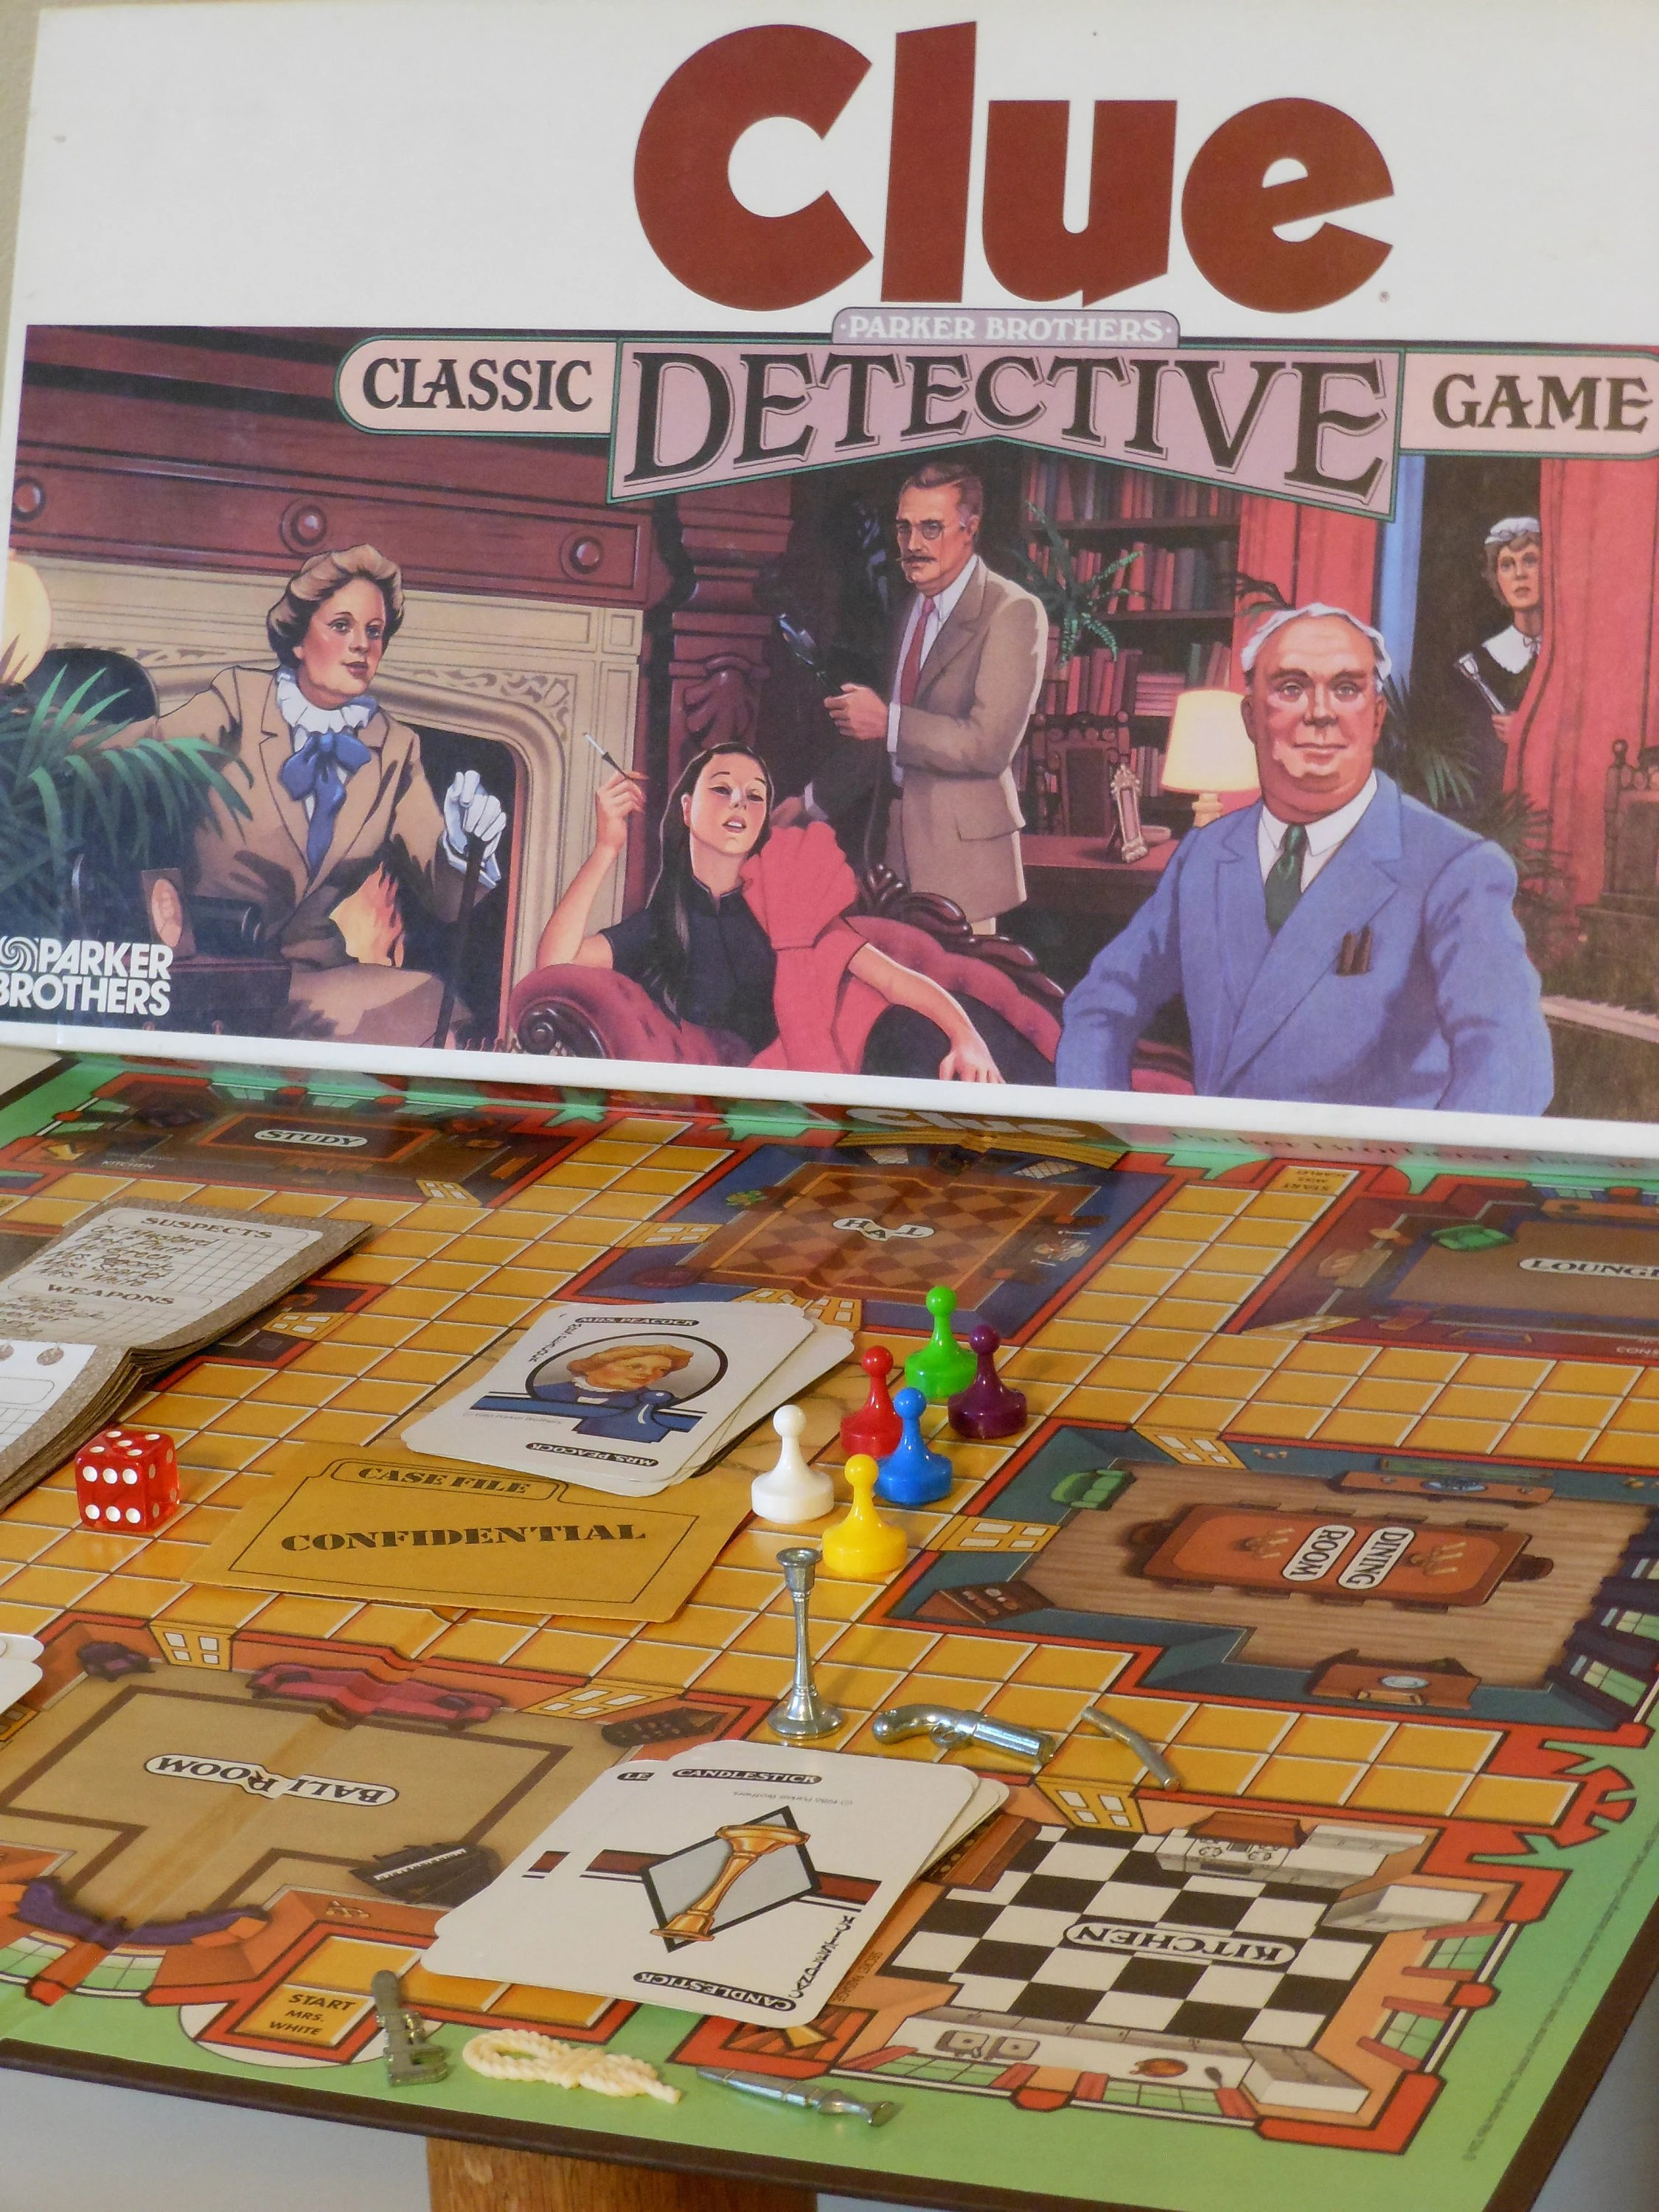 Clue The Classic Detective Game